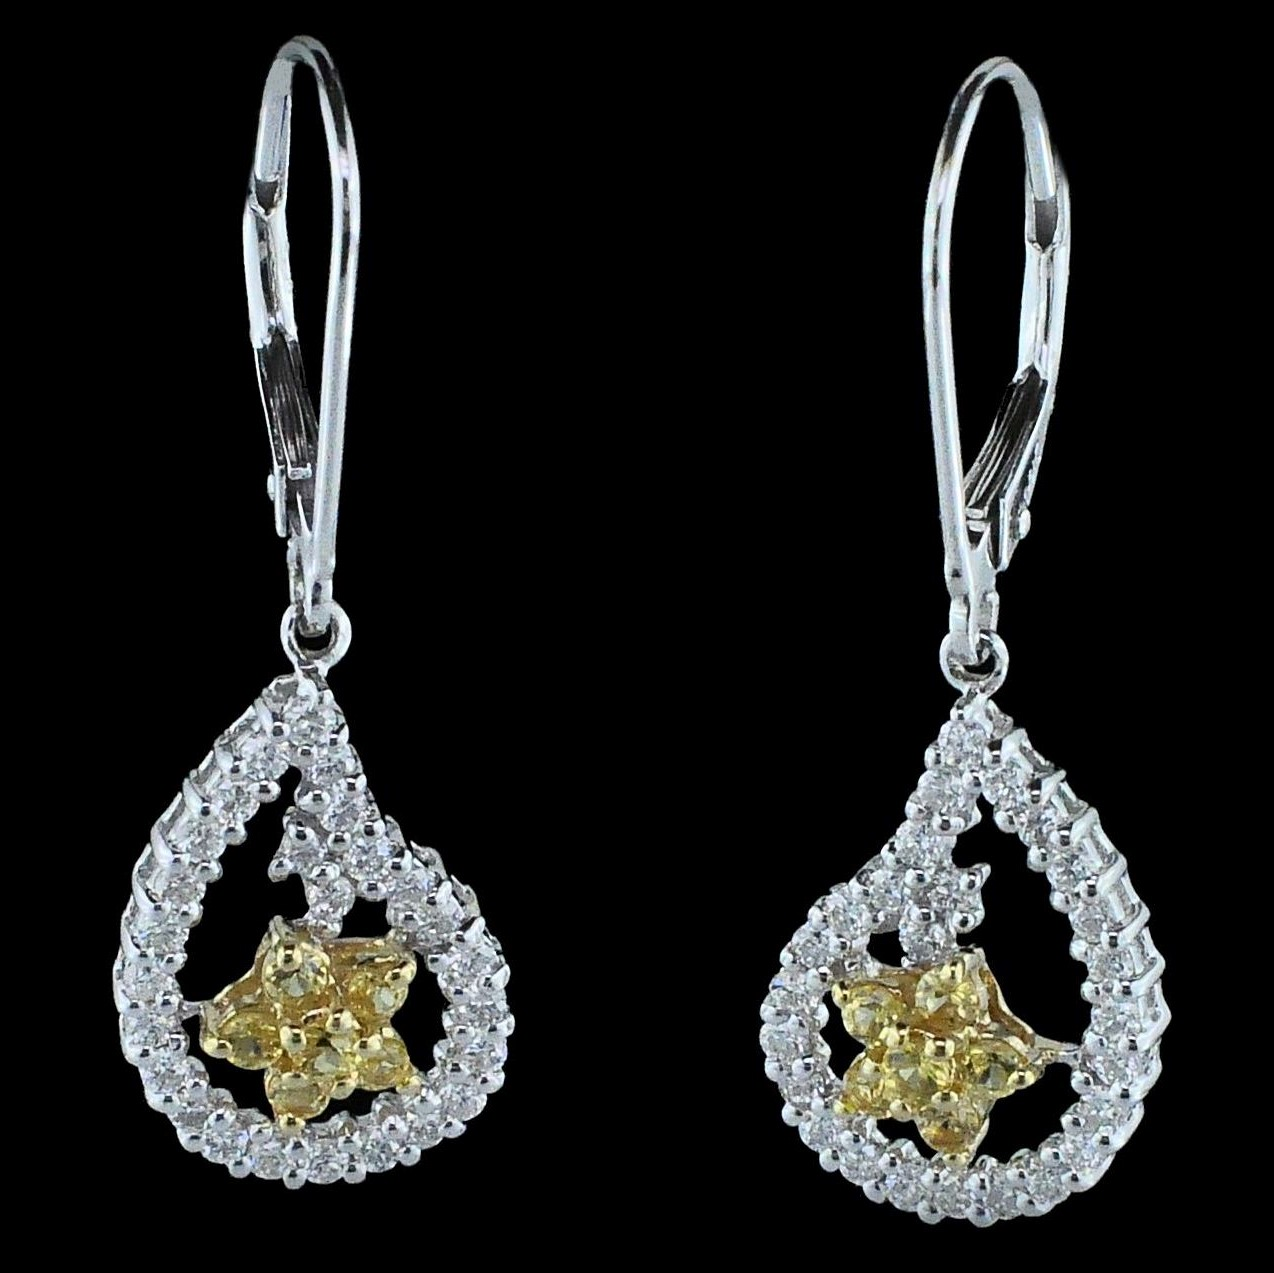 Alisa Unger Designs Yellow Sapphire and Diamond Earrings by Alisa Unger